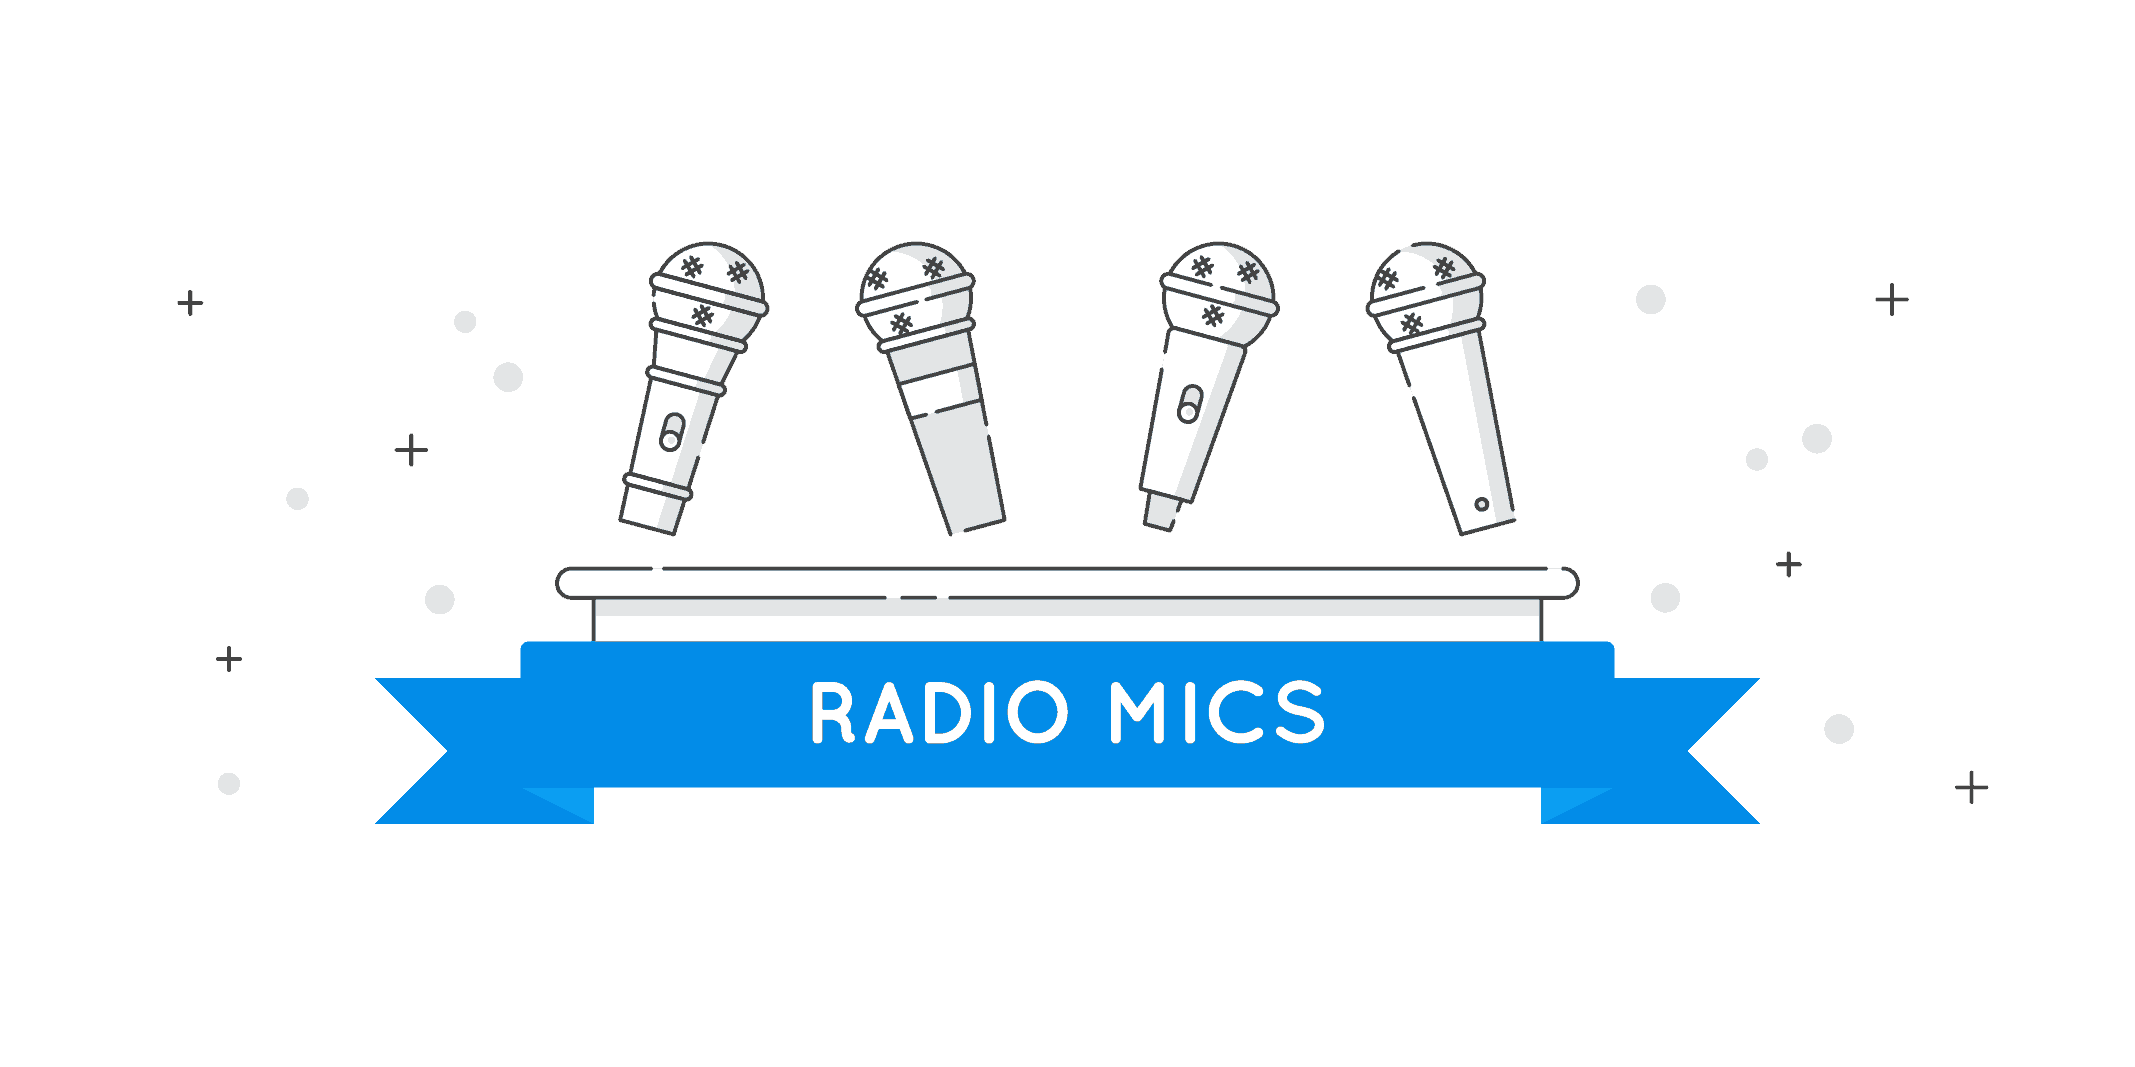 Microphone clipart talk show. Of the best